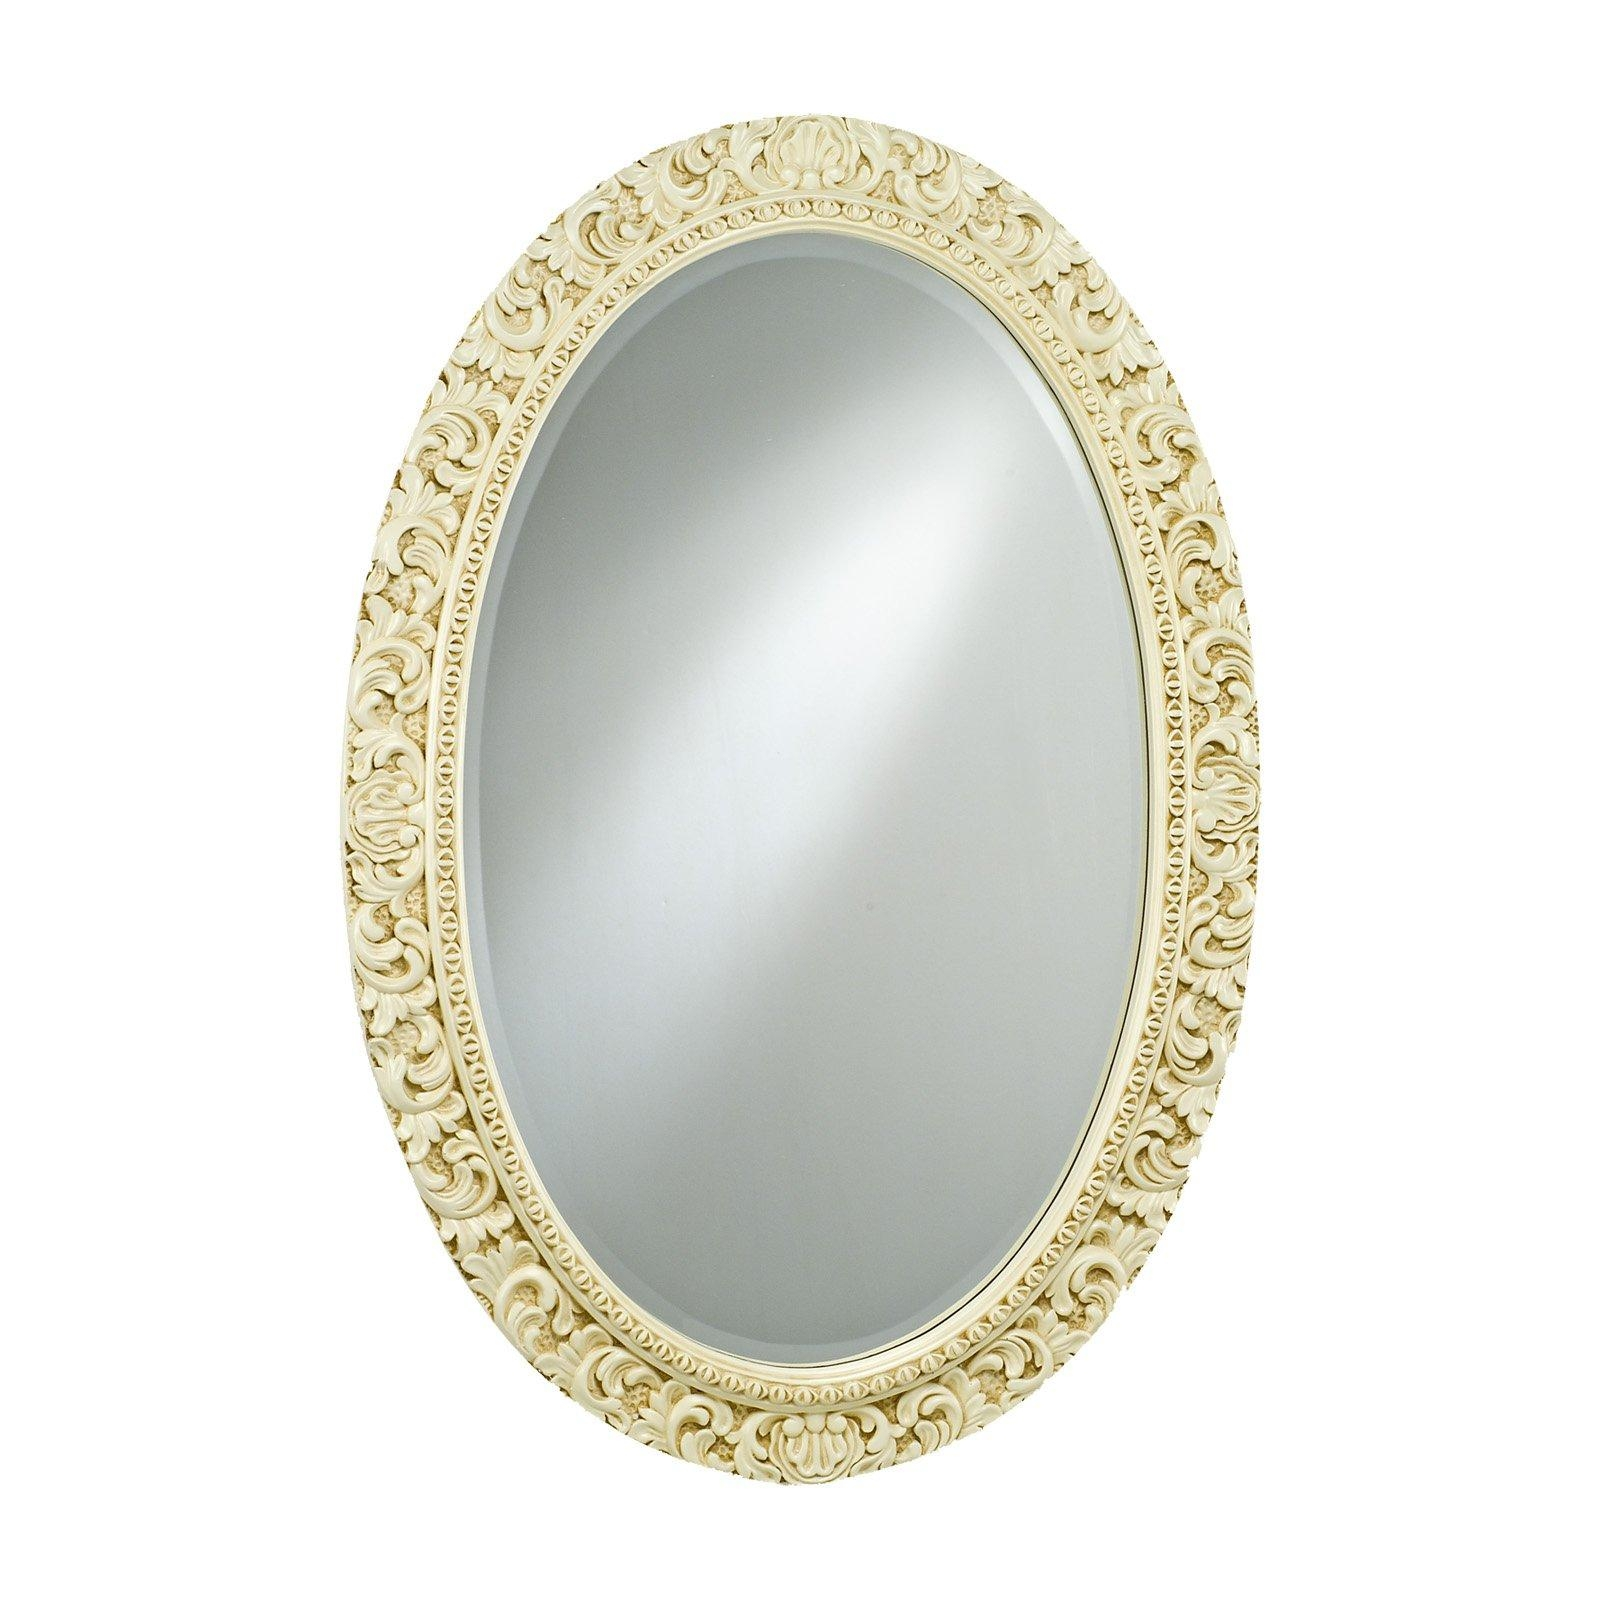 Timeless Tradition Ornate Oval Wall Mirror – 24W X 36H In In Ornate Oval Mirrors (Image 18 of 20)